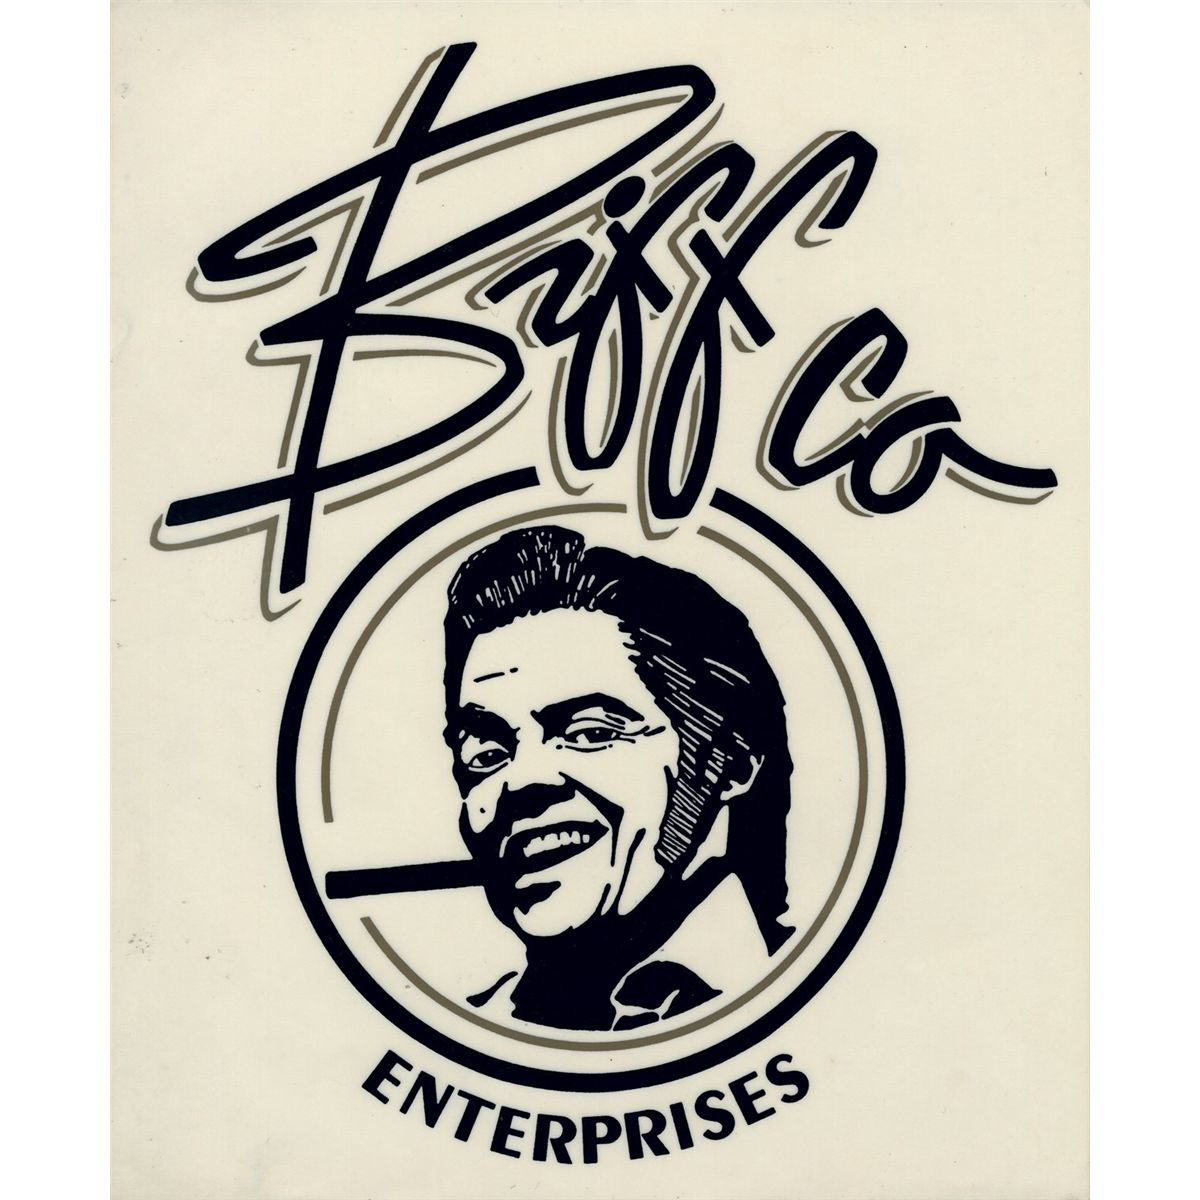 biff co enterprises sticker from back to the future ii. Black Bedroom Furniture Sets. Home Design Ideas